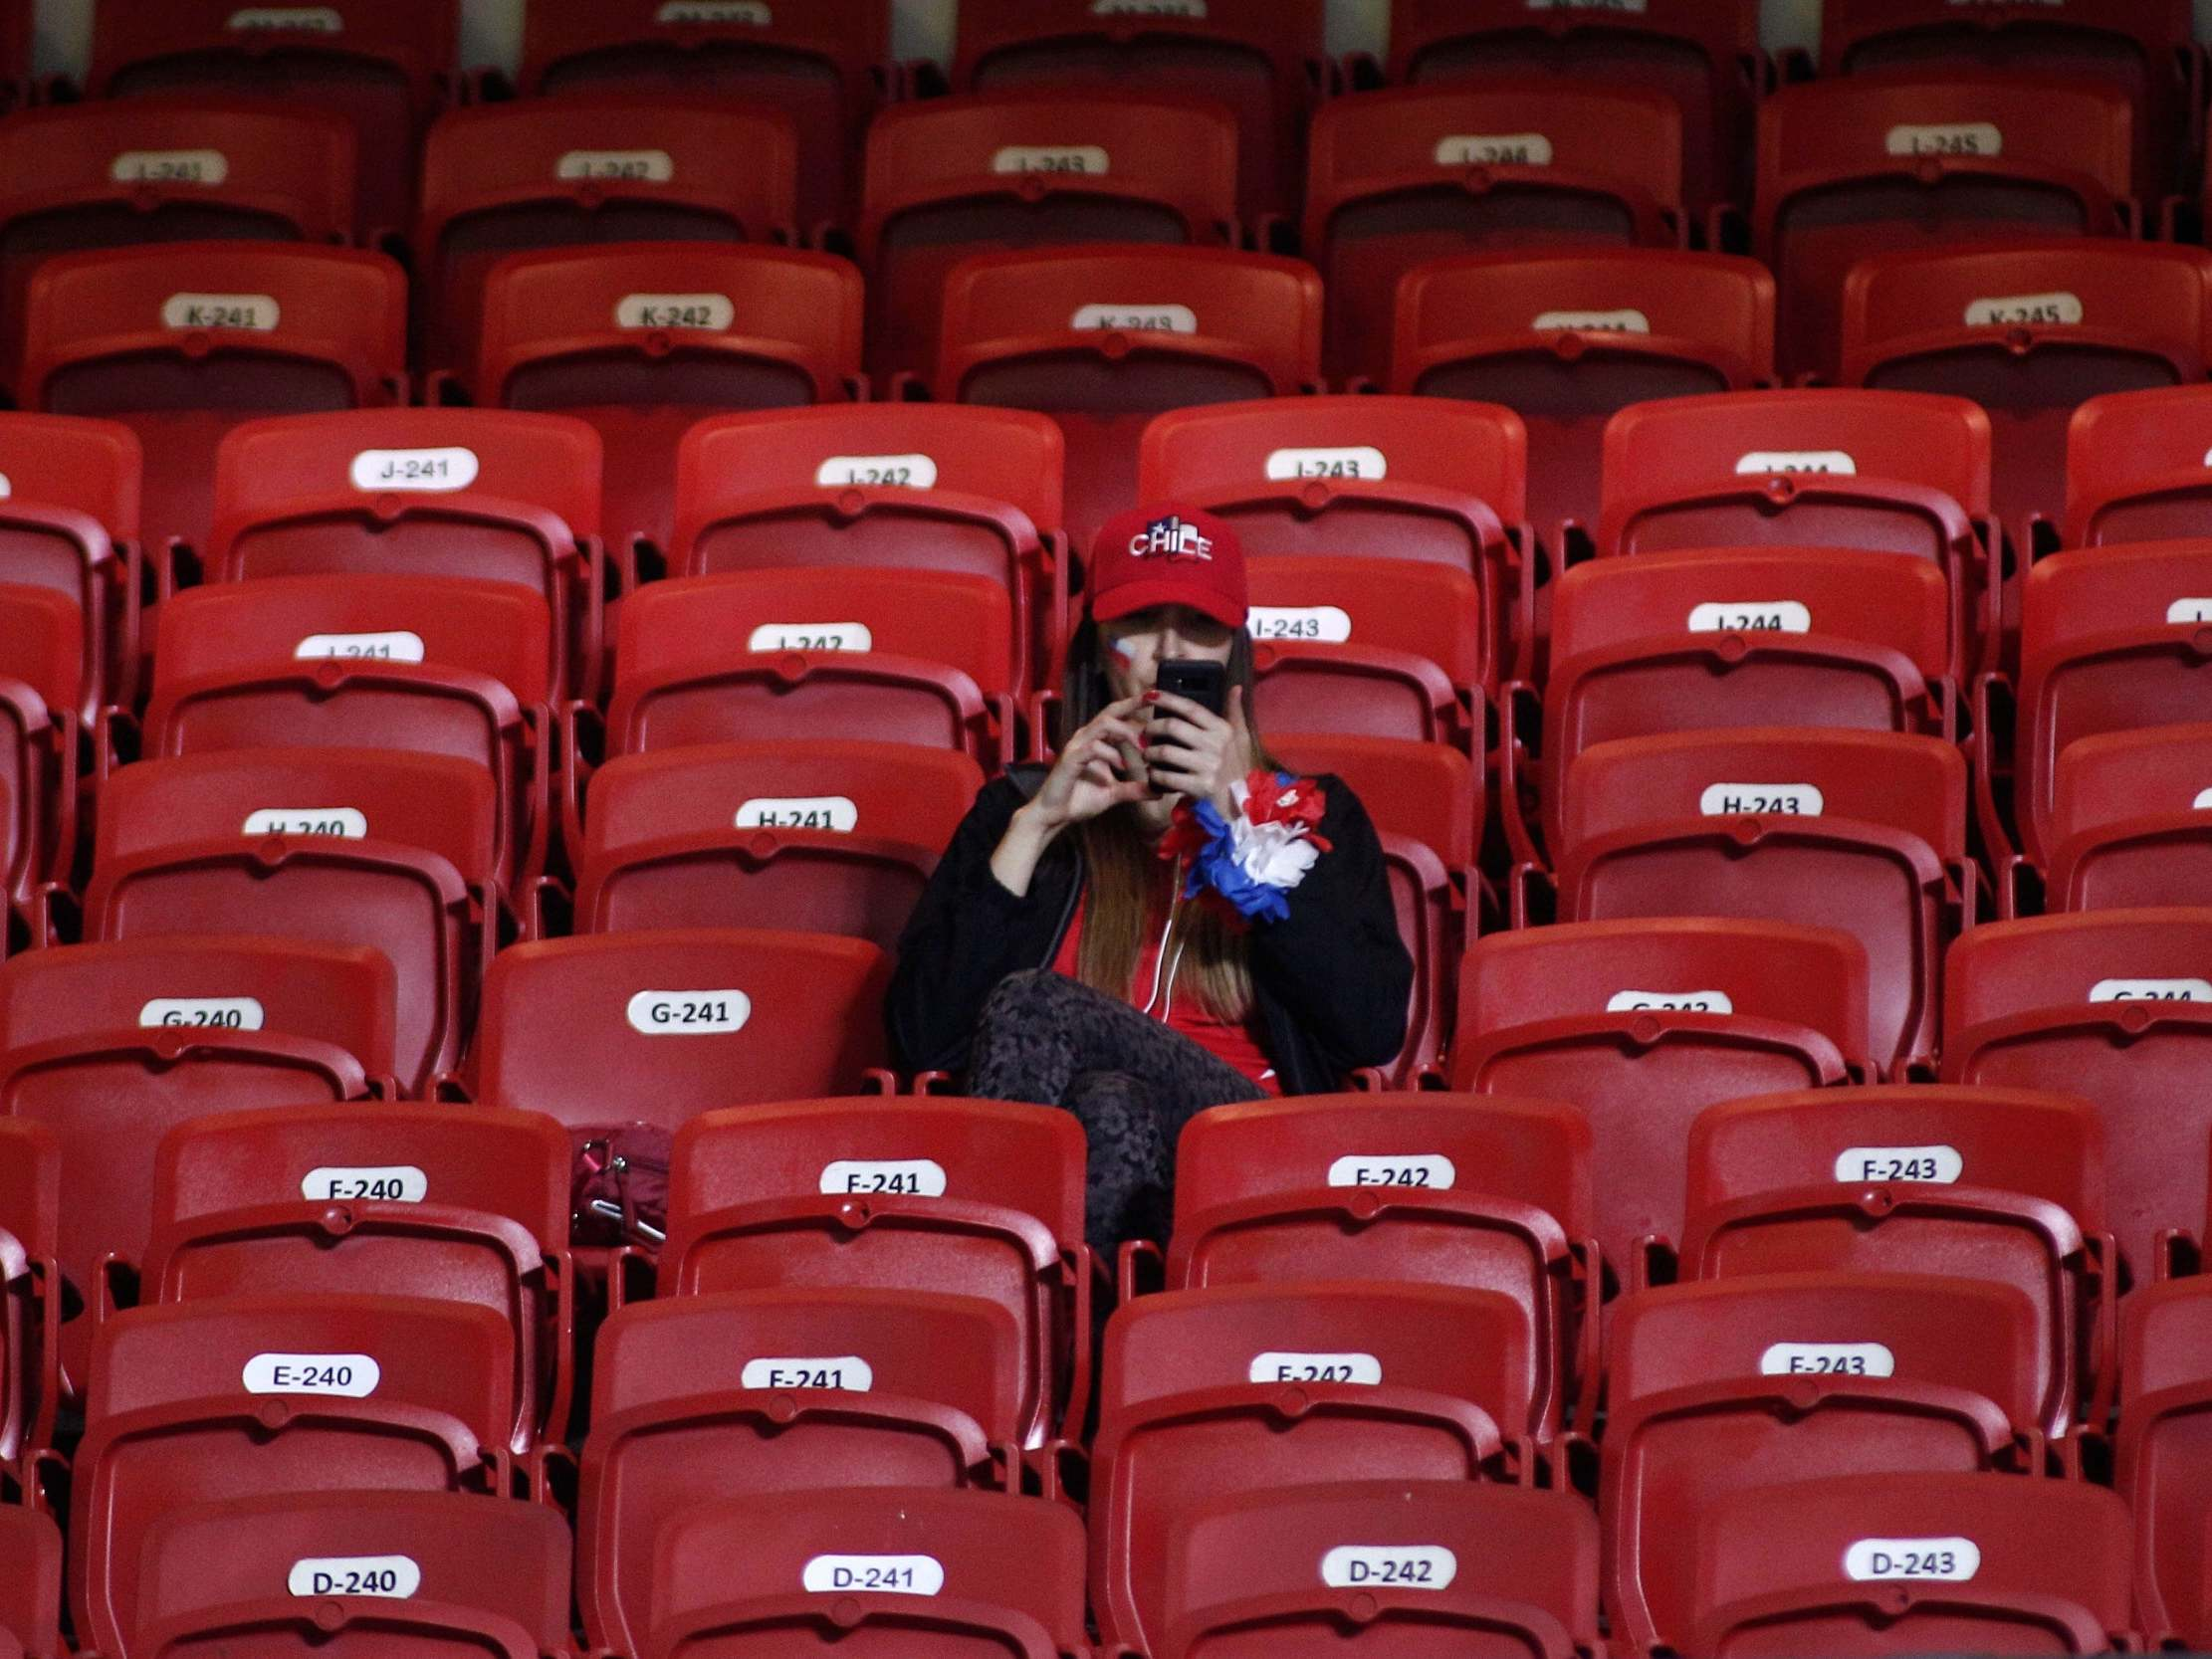 Copa America 2019 organisers express concern over poor attendance at tournament with Chile vs Japan more than 18,000 below capacity